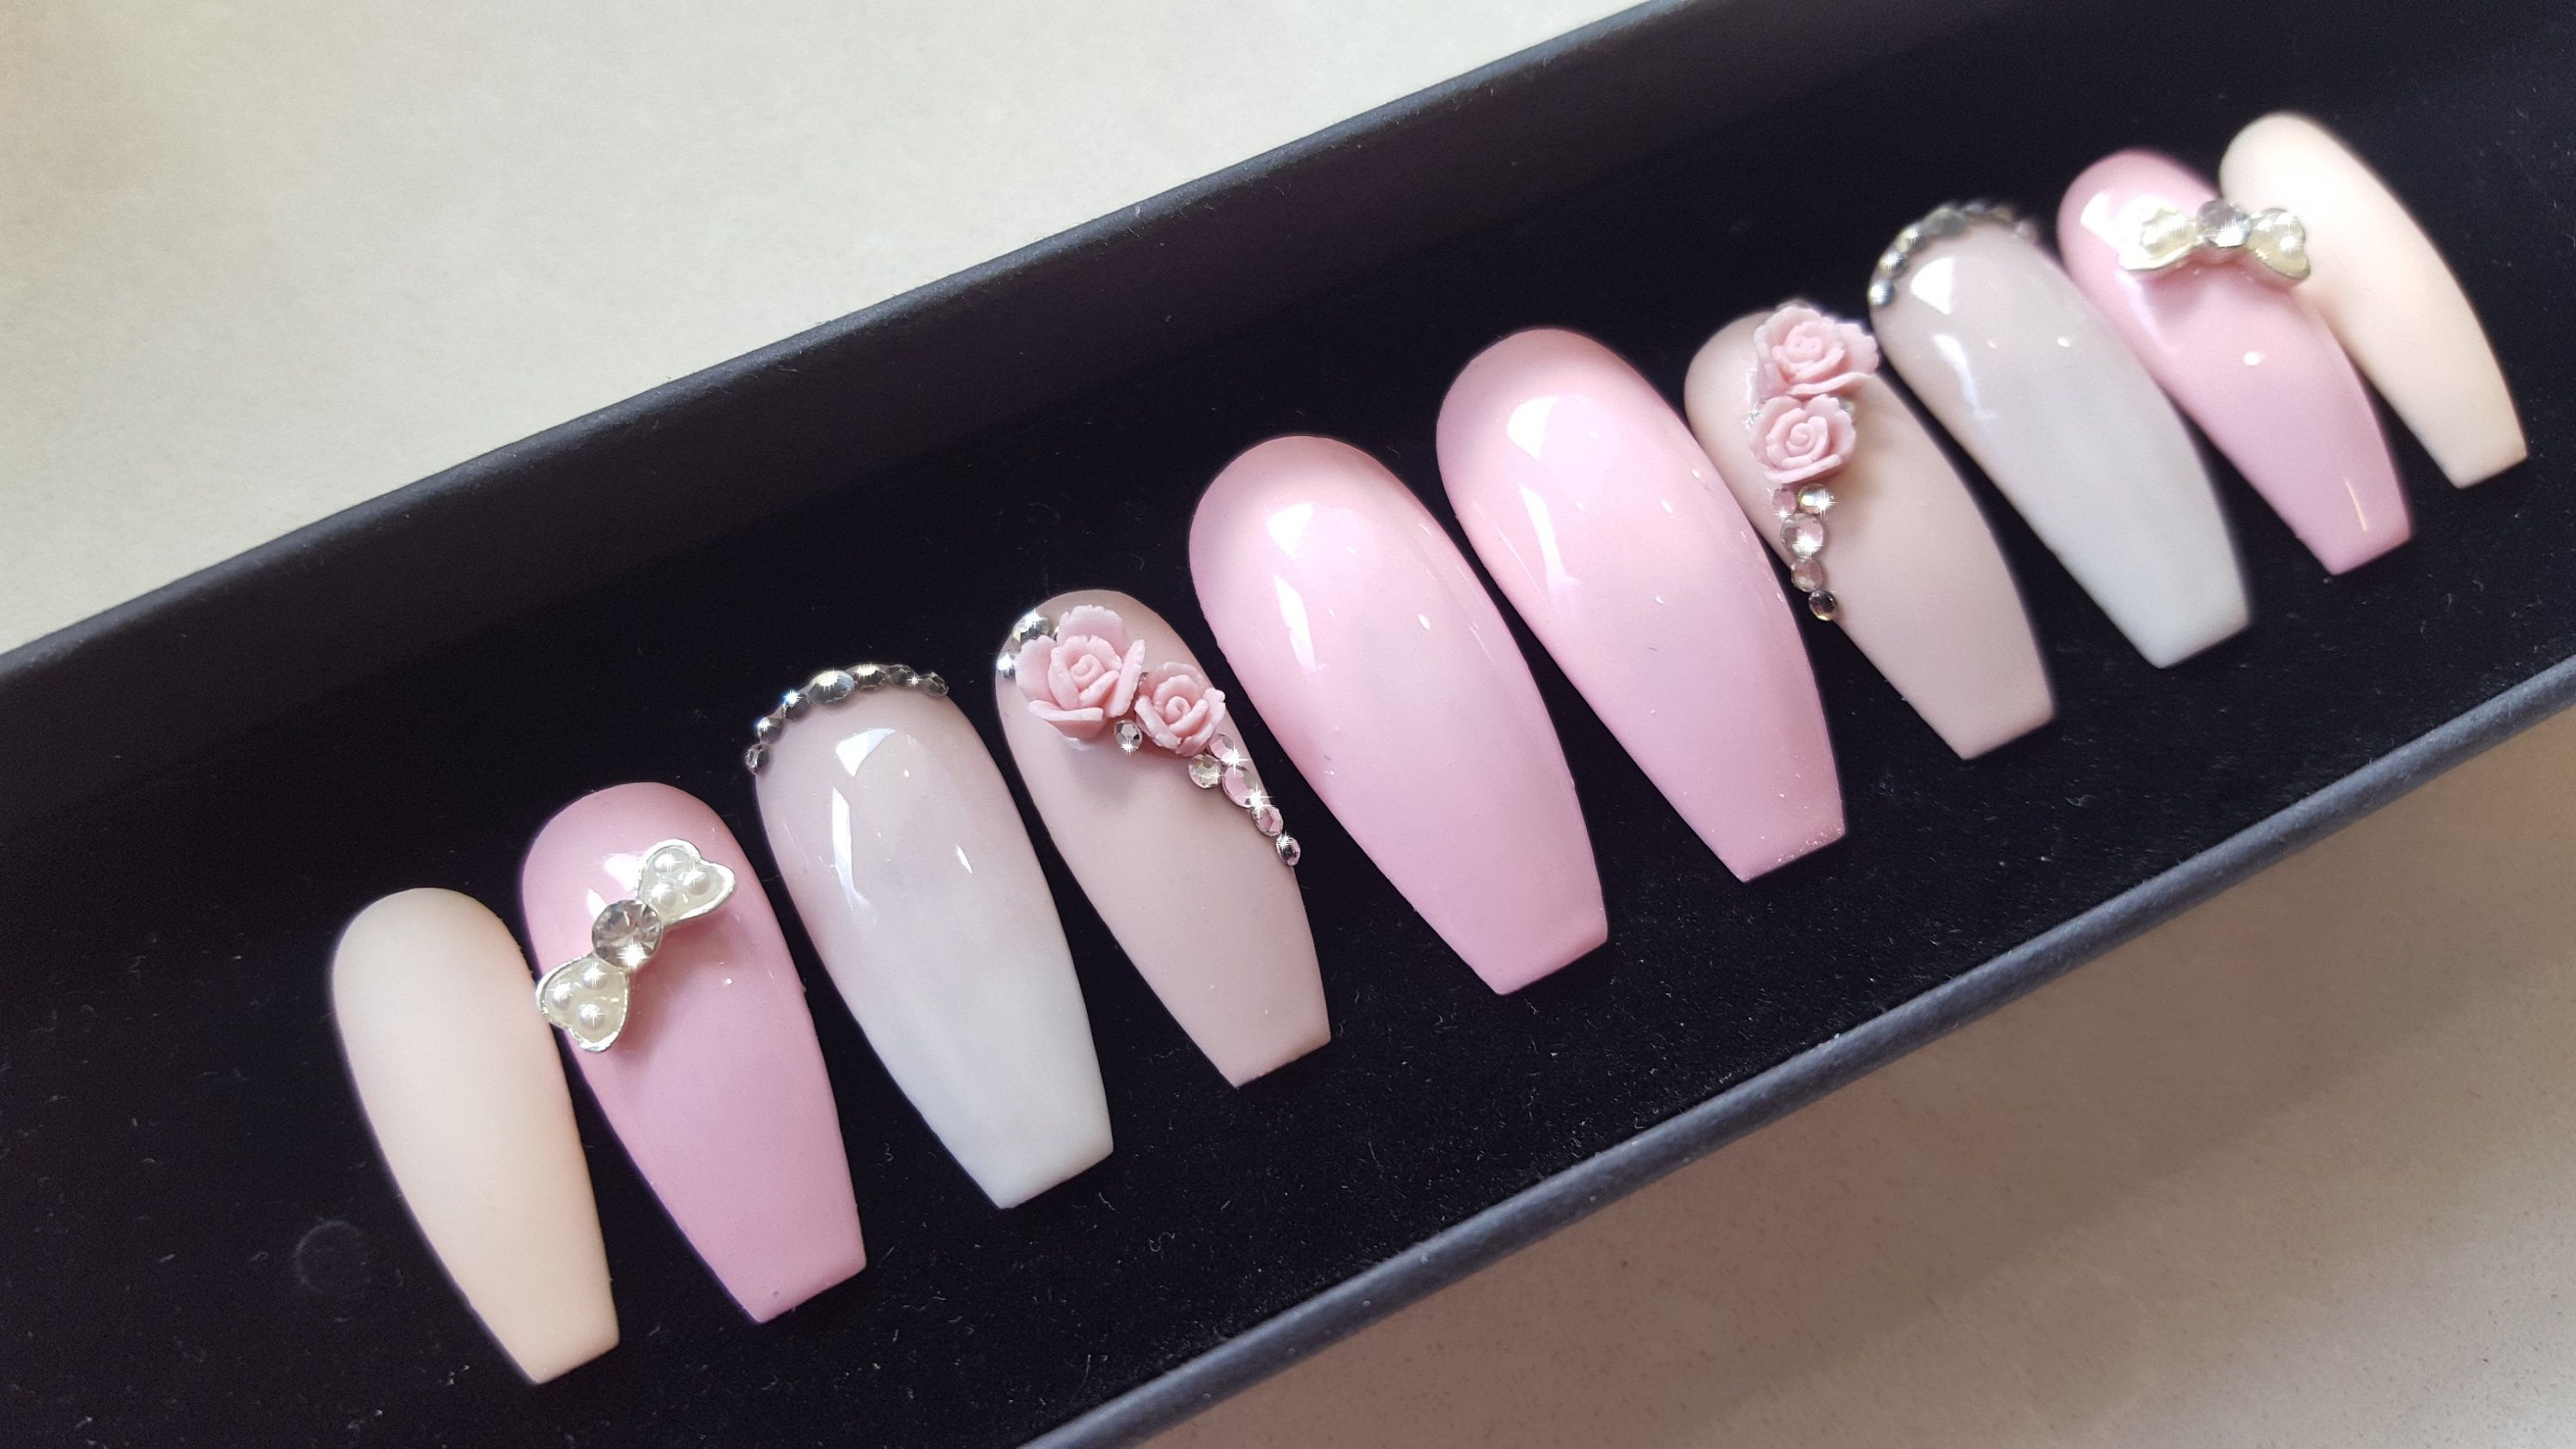 Kiss 24 Glue Press On Nails Pink Floral The Collection Medium 62273 Kiss Glue On Nails Kiss Press On Nails Press On Nails